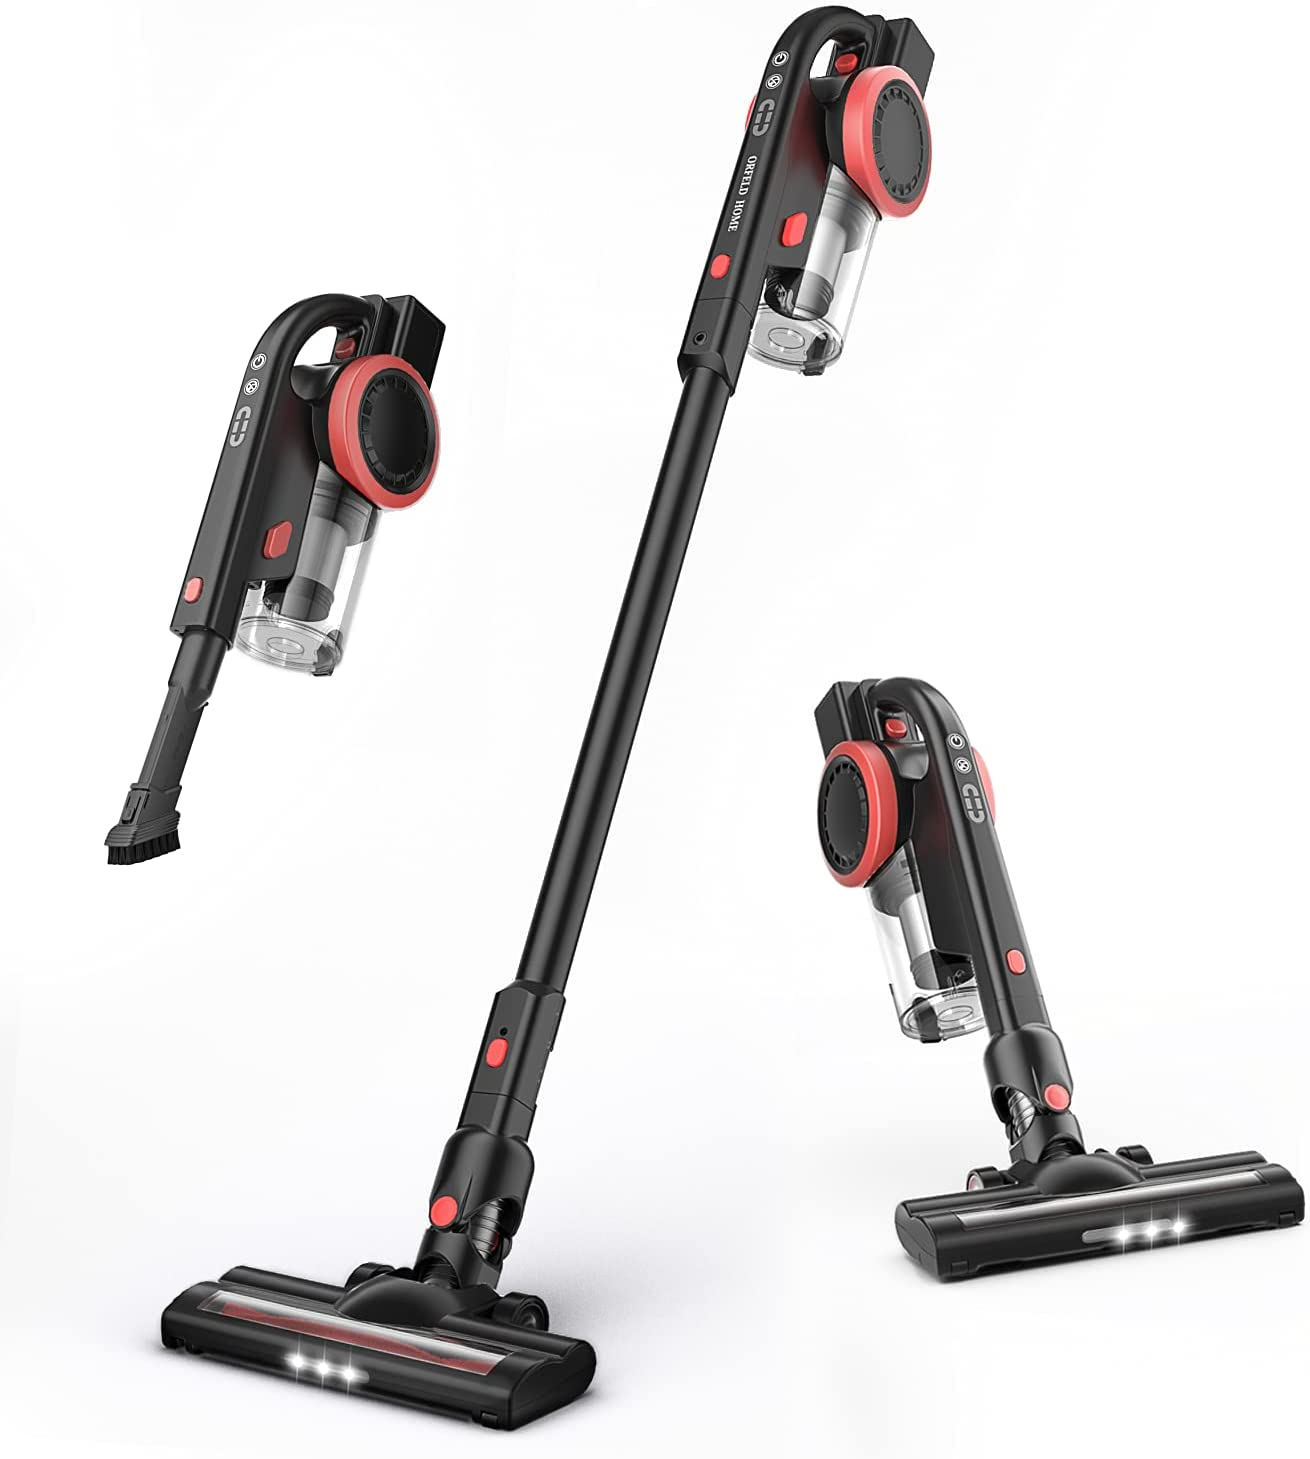 ORFELD Cordless Vacuum Columbus Mall Cheap mail order sales Cleaner Portable Stick 20000Pa